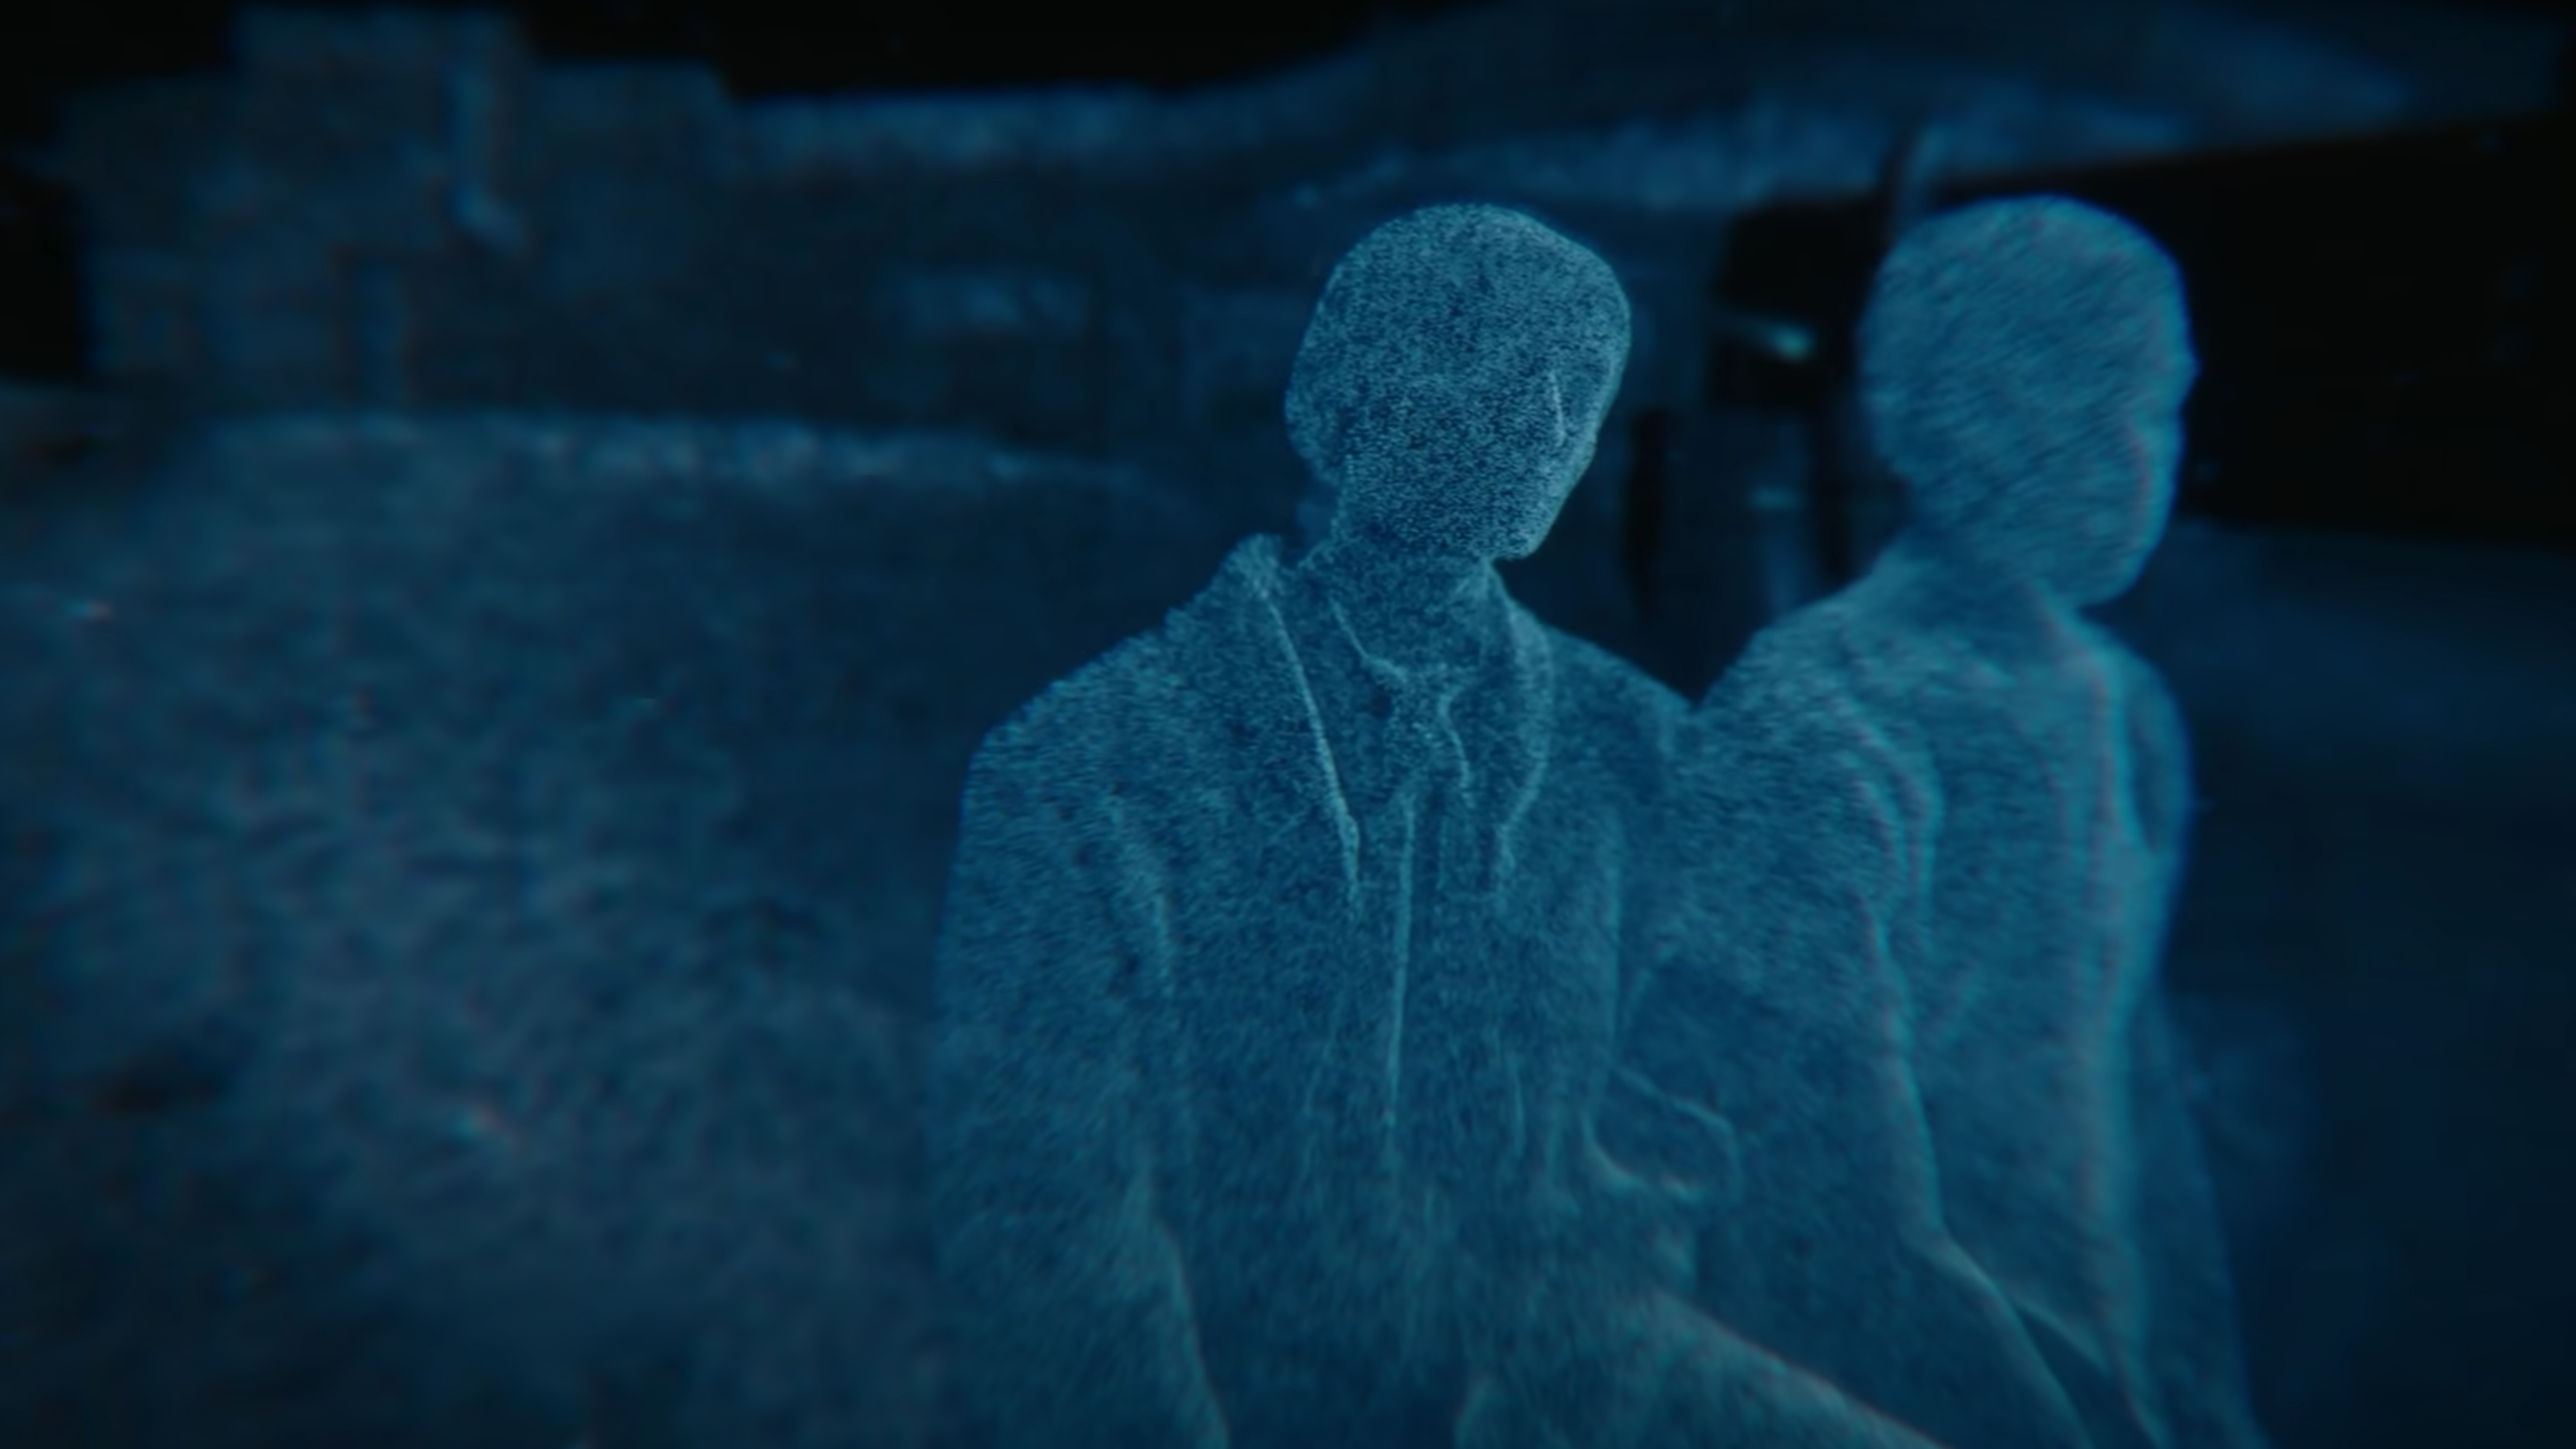 The point cloud of two people created by a LiDAR scanner